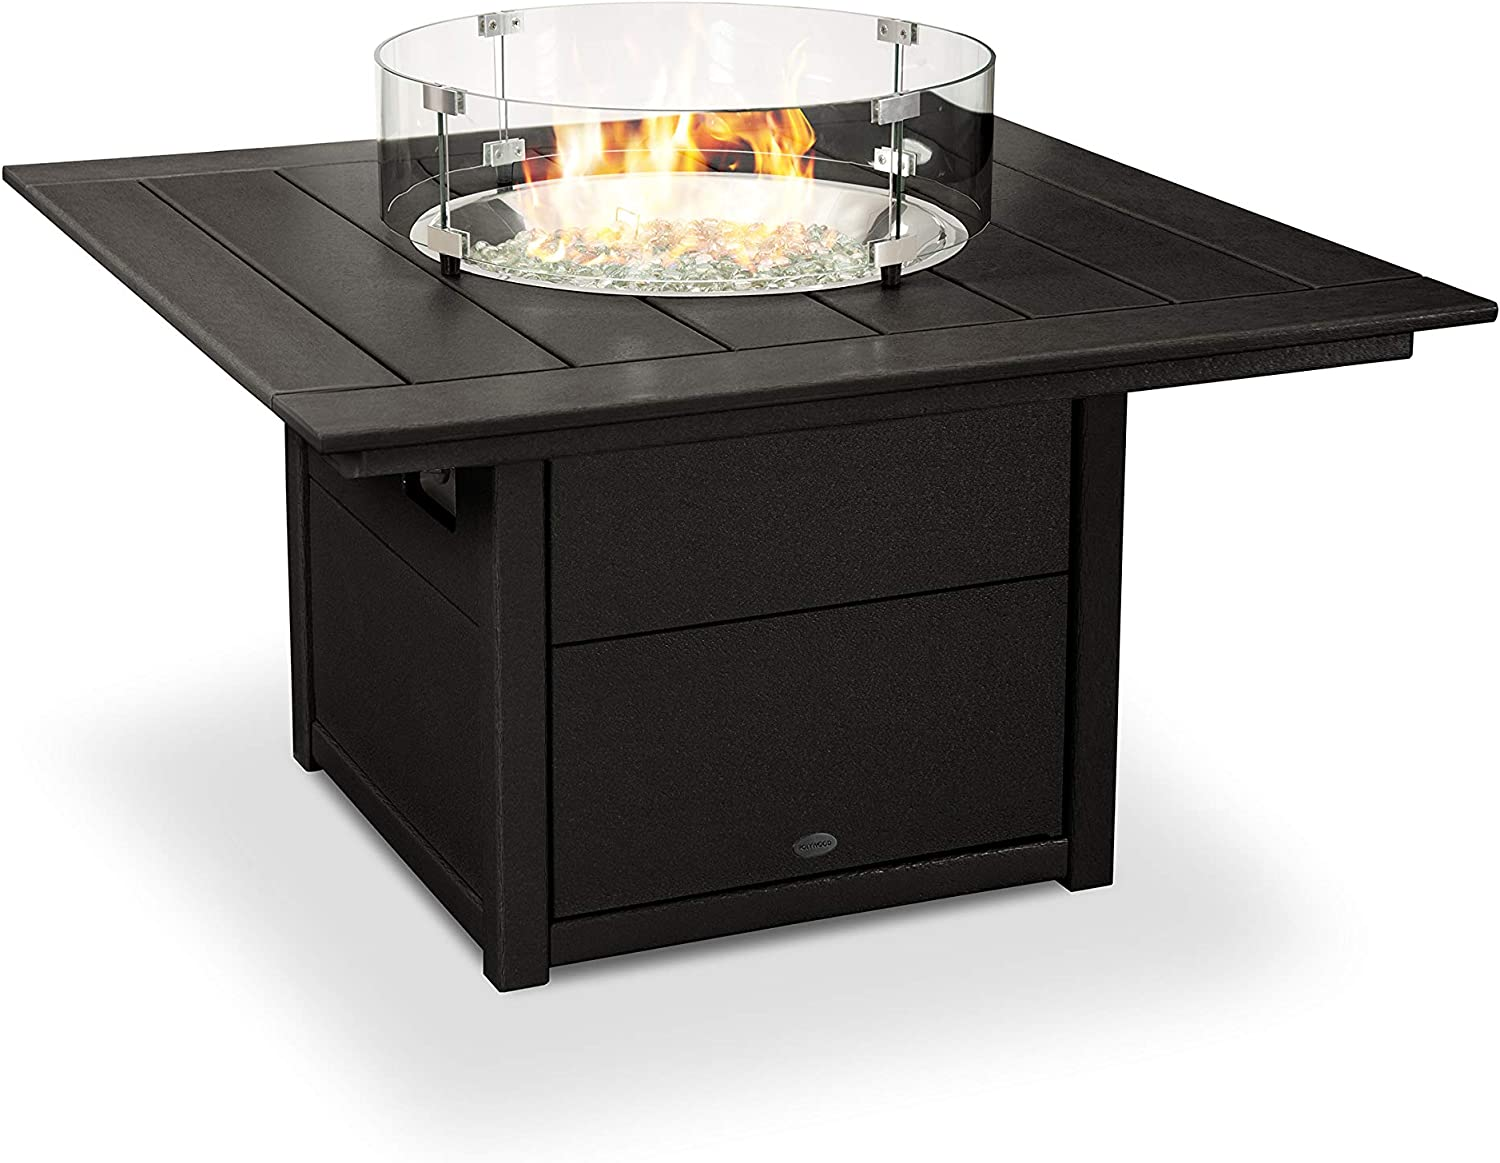 "B07DM7VKXT POLYWOOD Square 42"" Fire Pit Table (Black) 71dItfw69TL"